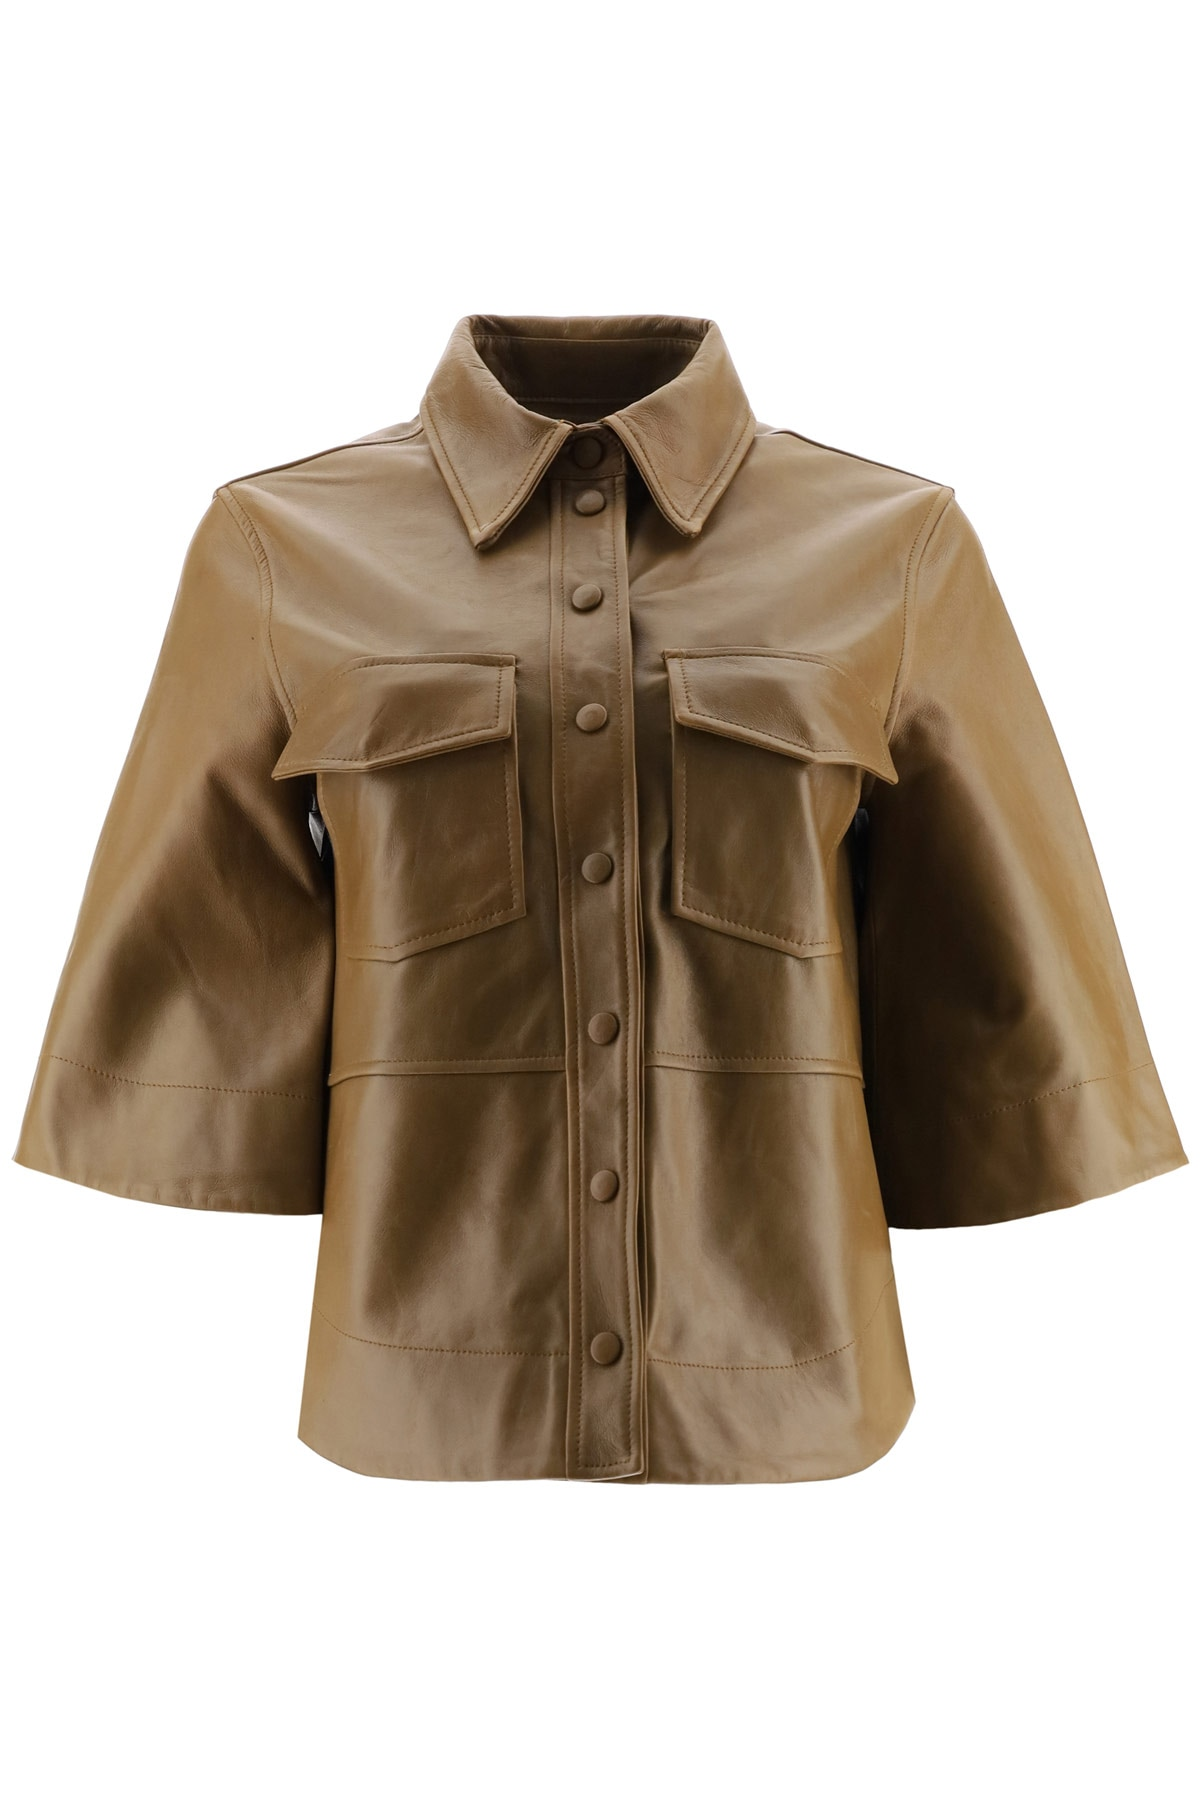 Ganni Leather Shirt 34 Brown Leather